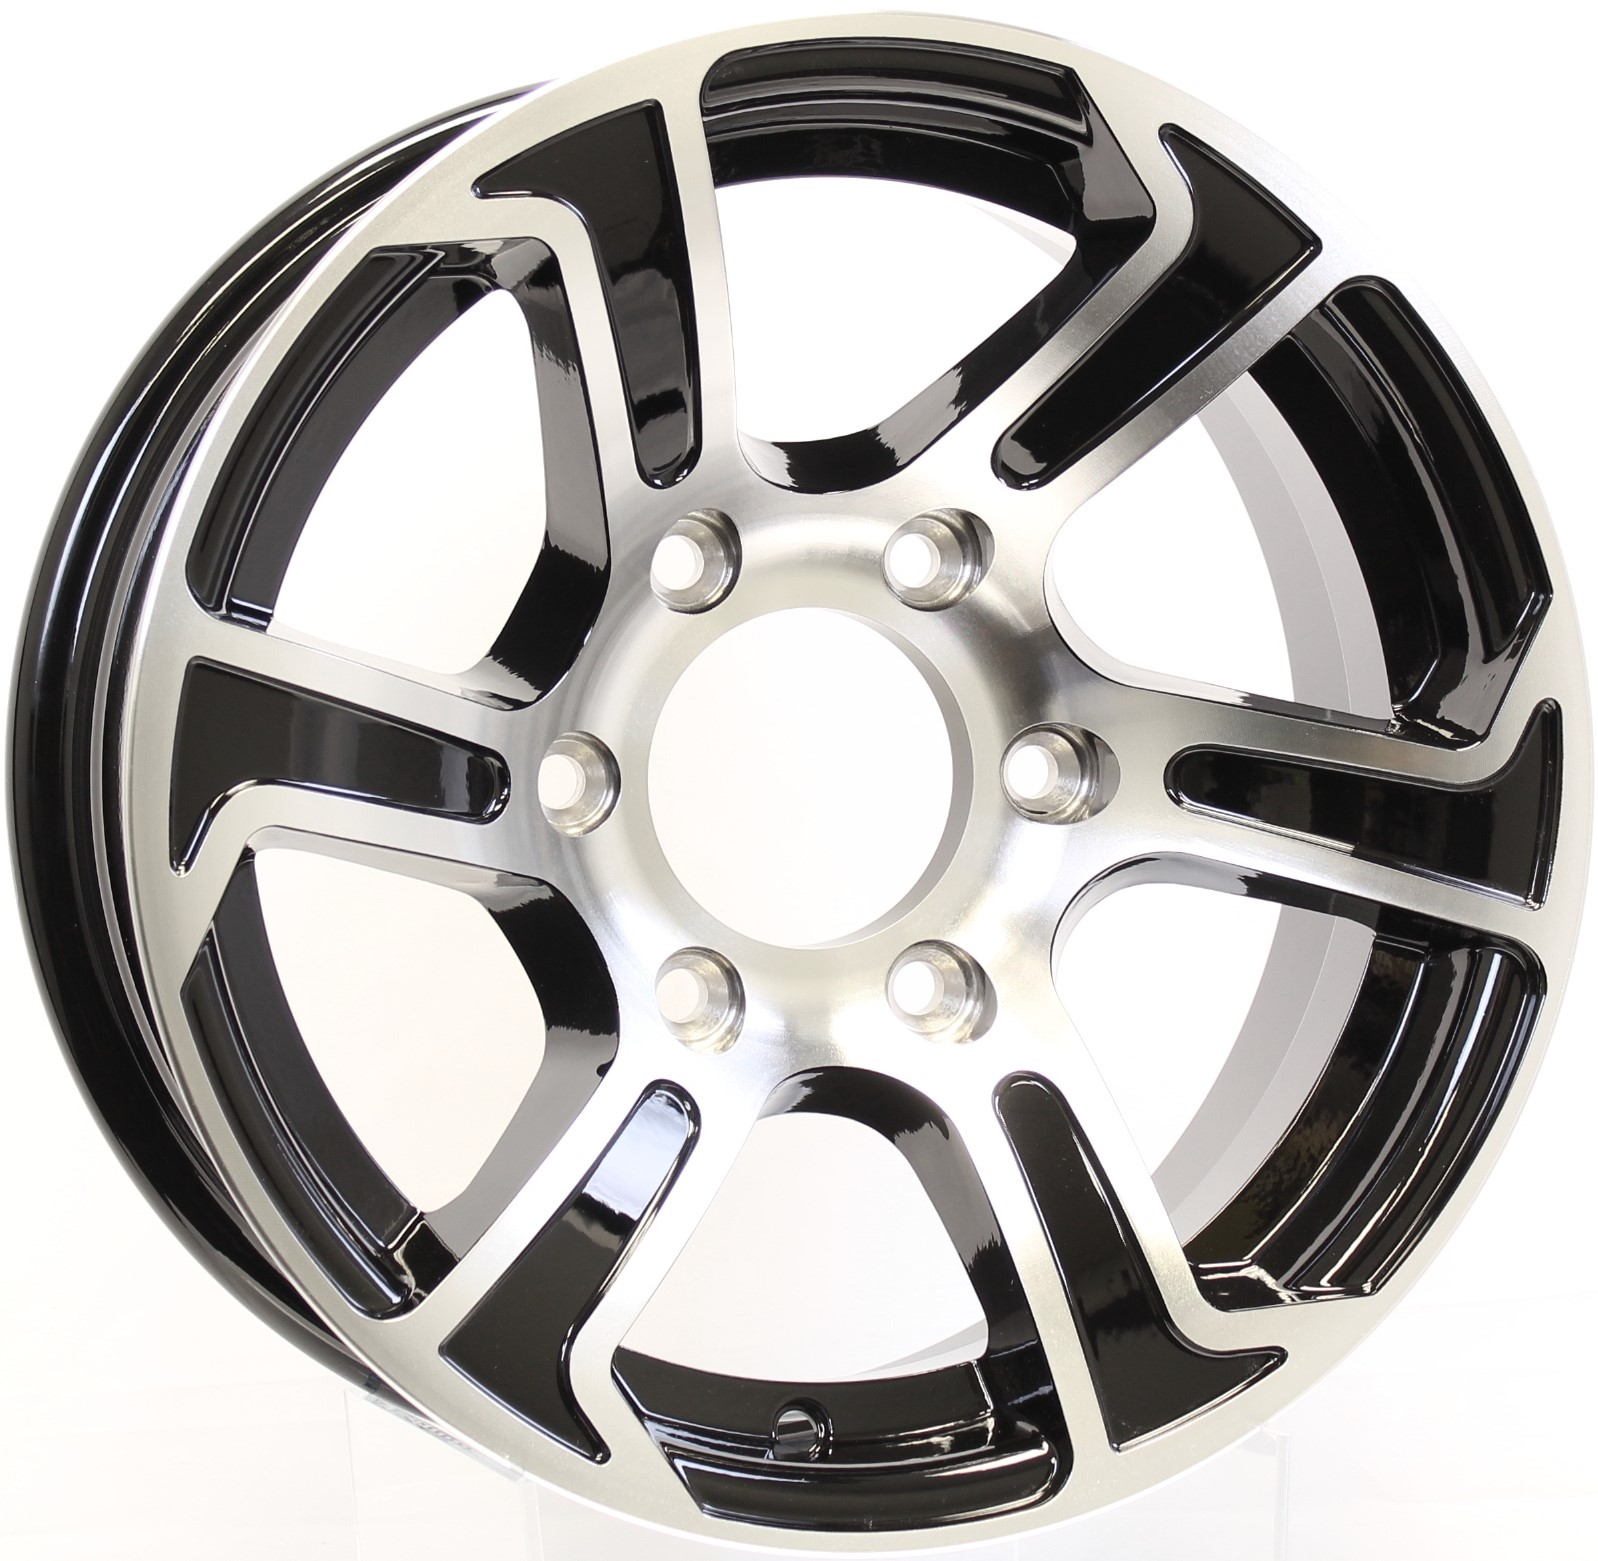 Summit- 15x6 6-5.5 Black Aluminum Trailer Wheel Image